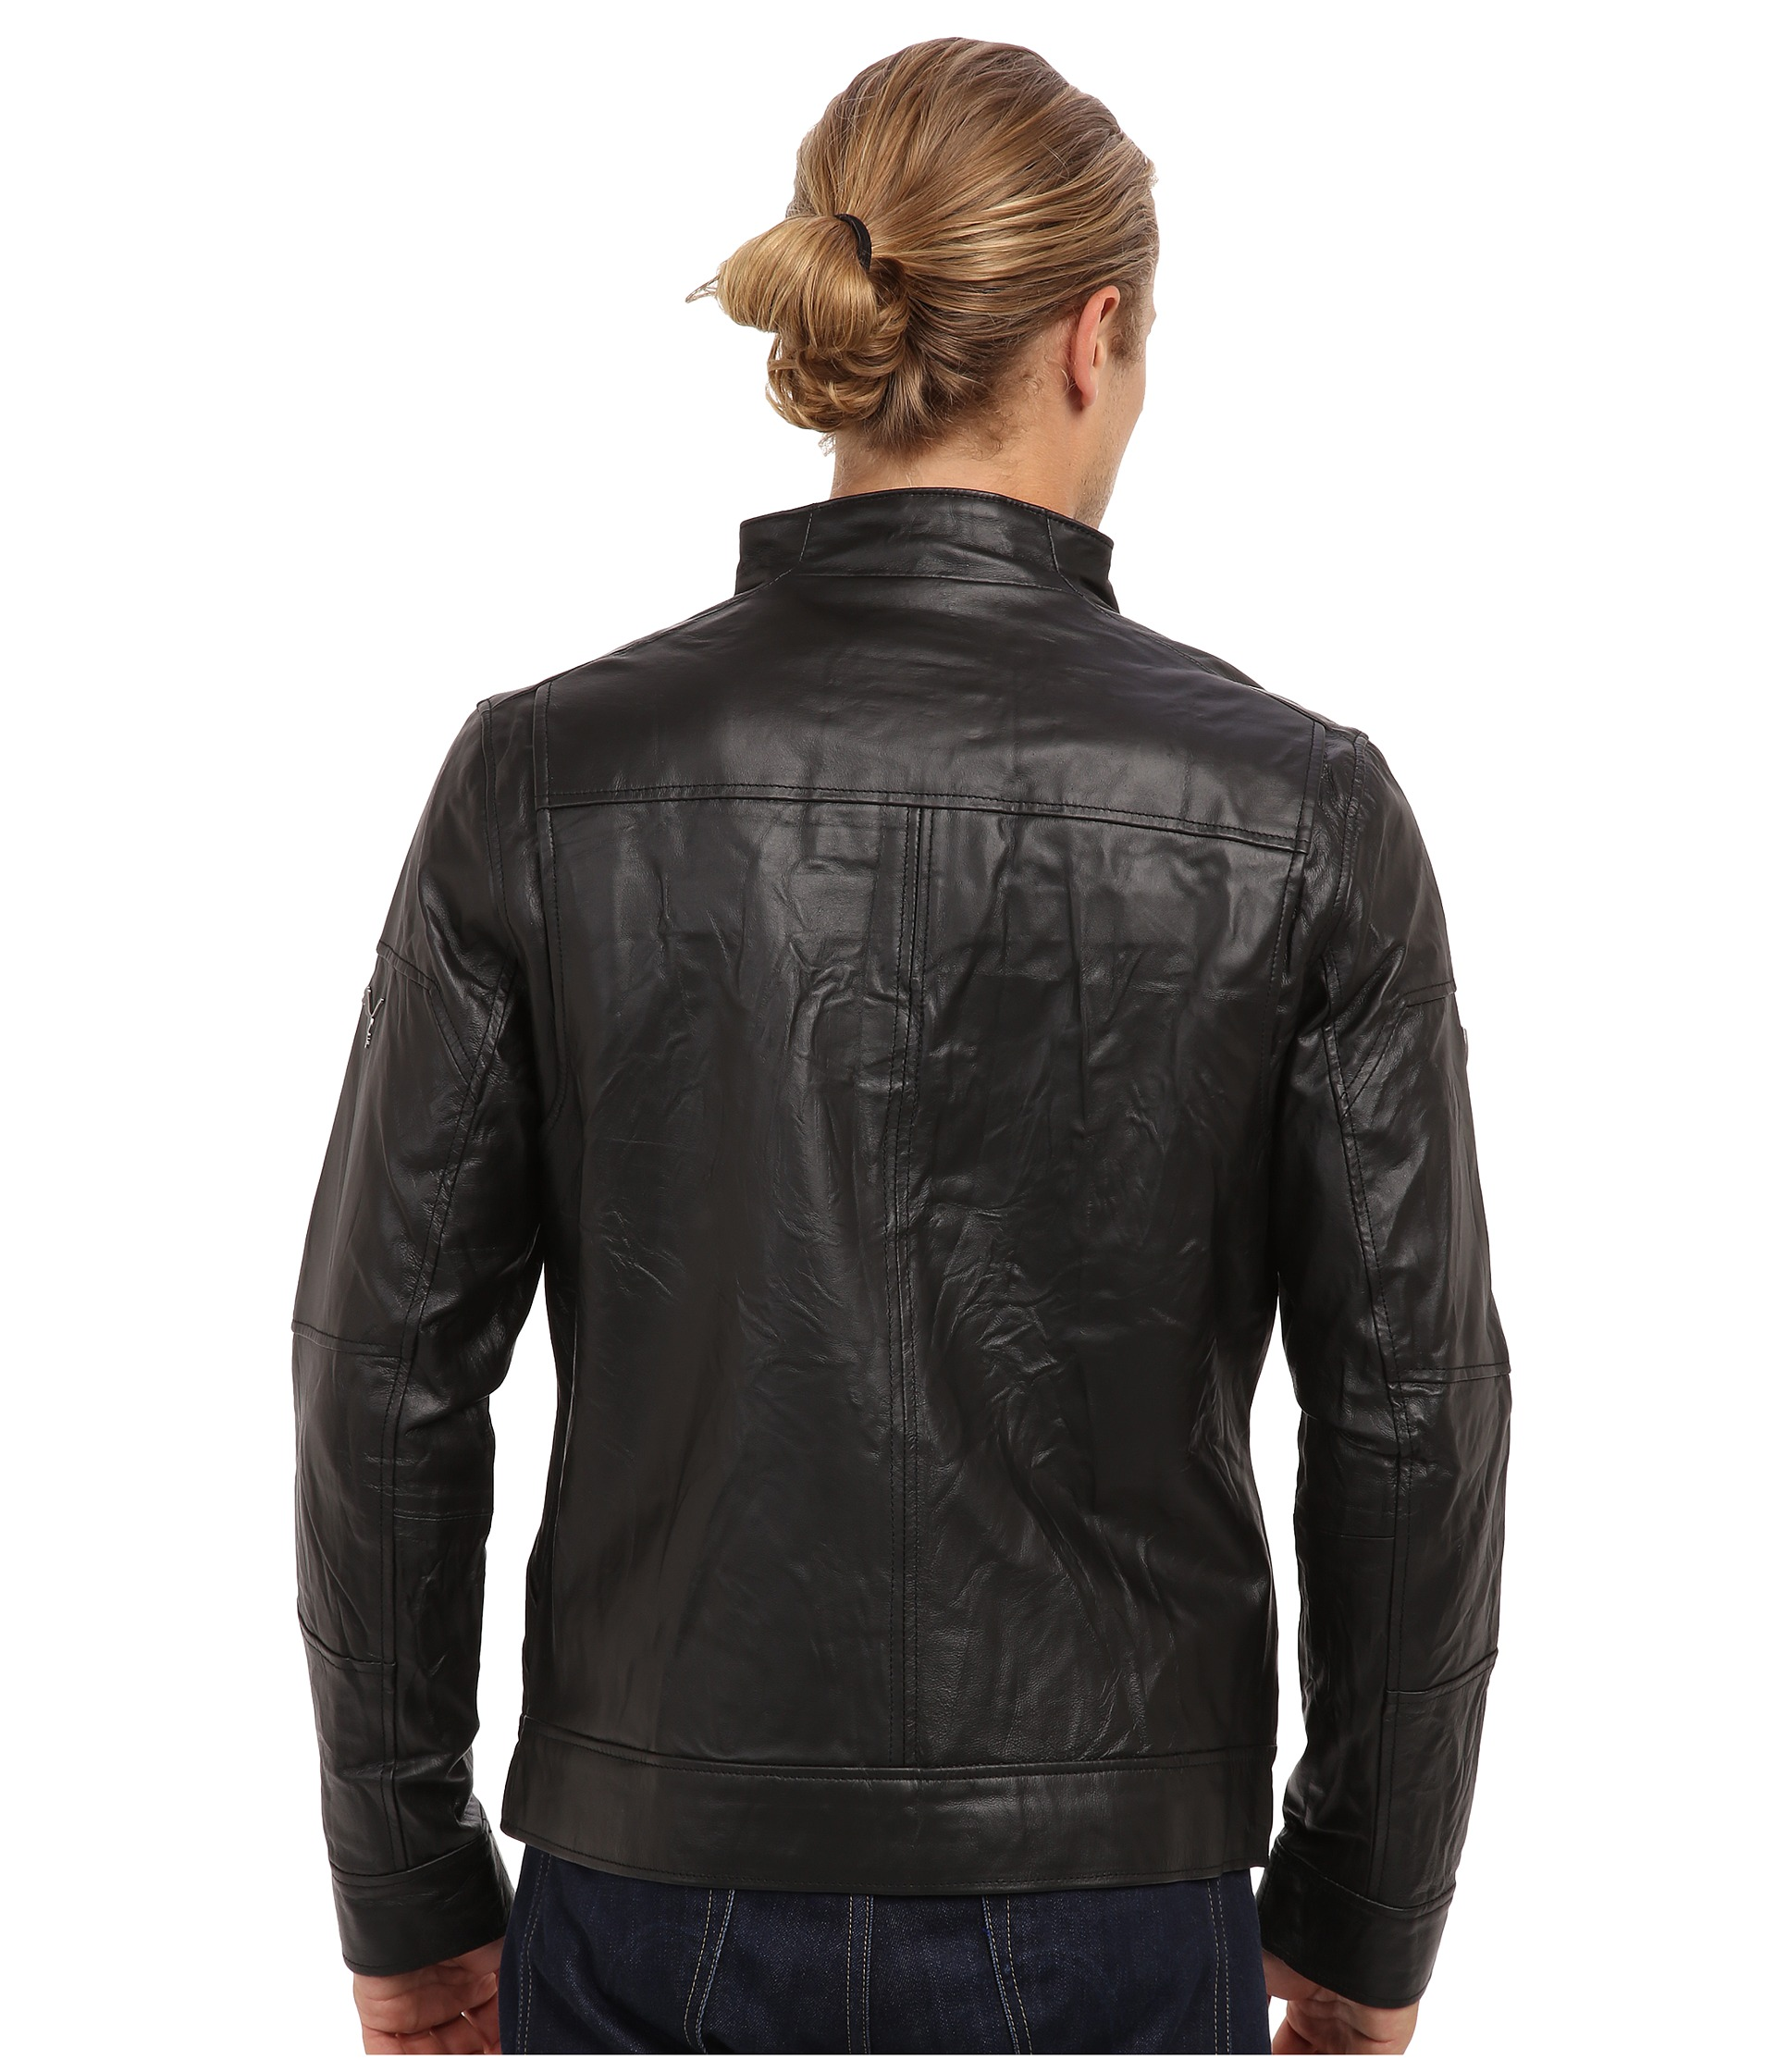 Puma leather jacket